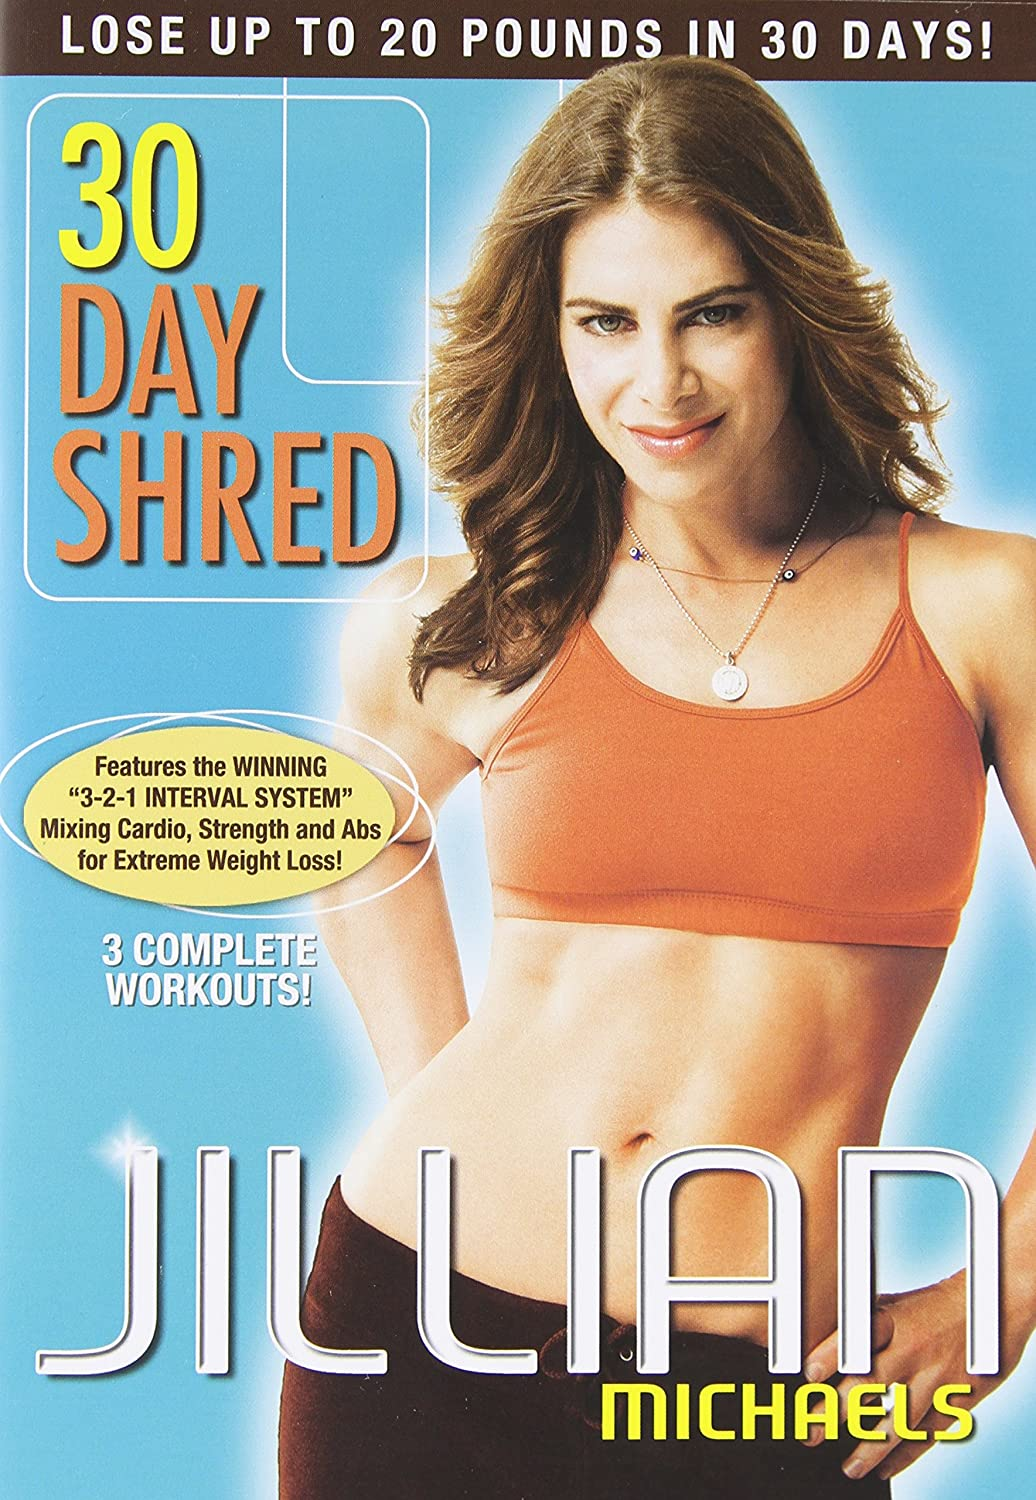 Jillian Michaels: 30 Day Shred J.K.Rowling Lionsgate Home Entertainment Exercise & Fitness